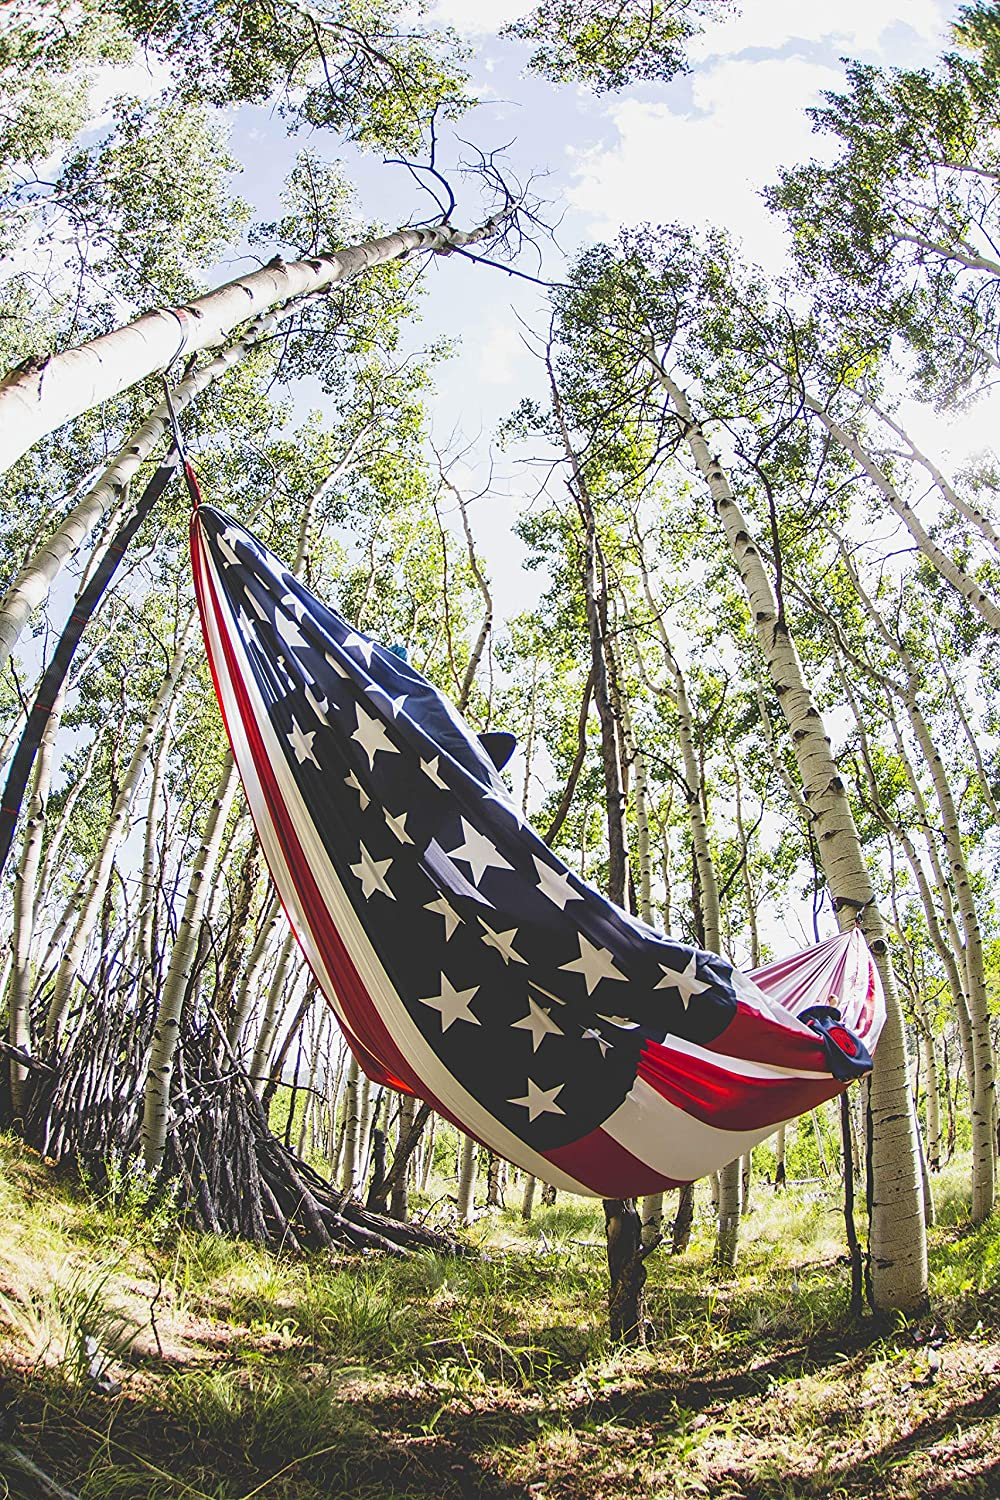 Portable with Carabiners and Haning Kit Backpacking Perfect for Outdoor Adventures SH-FLAG Grand Trunk Flag Series Single Parachute Nylon Hammock Portable with Carabiners and Haning Kit and Festivals South Carolina Perfect for Outdoor Adventures